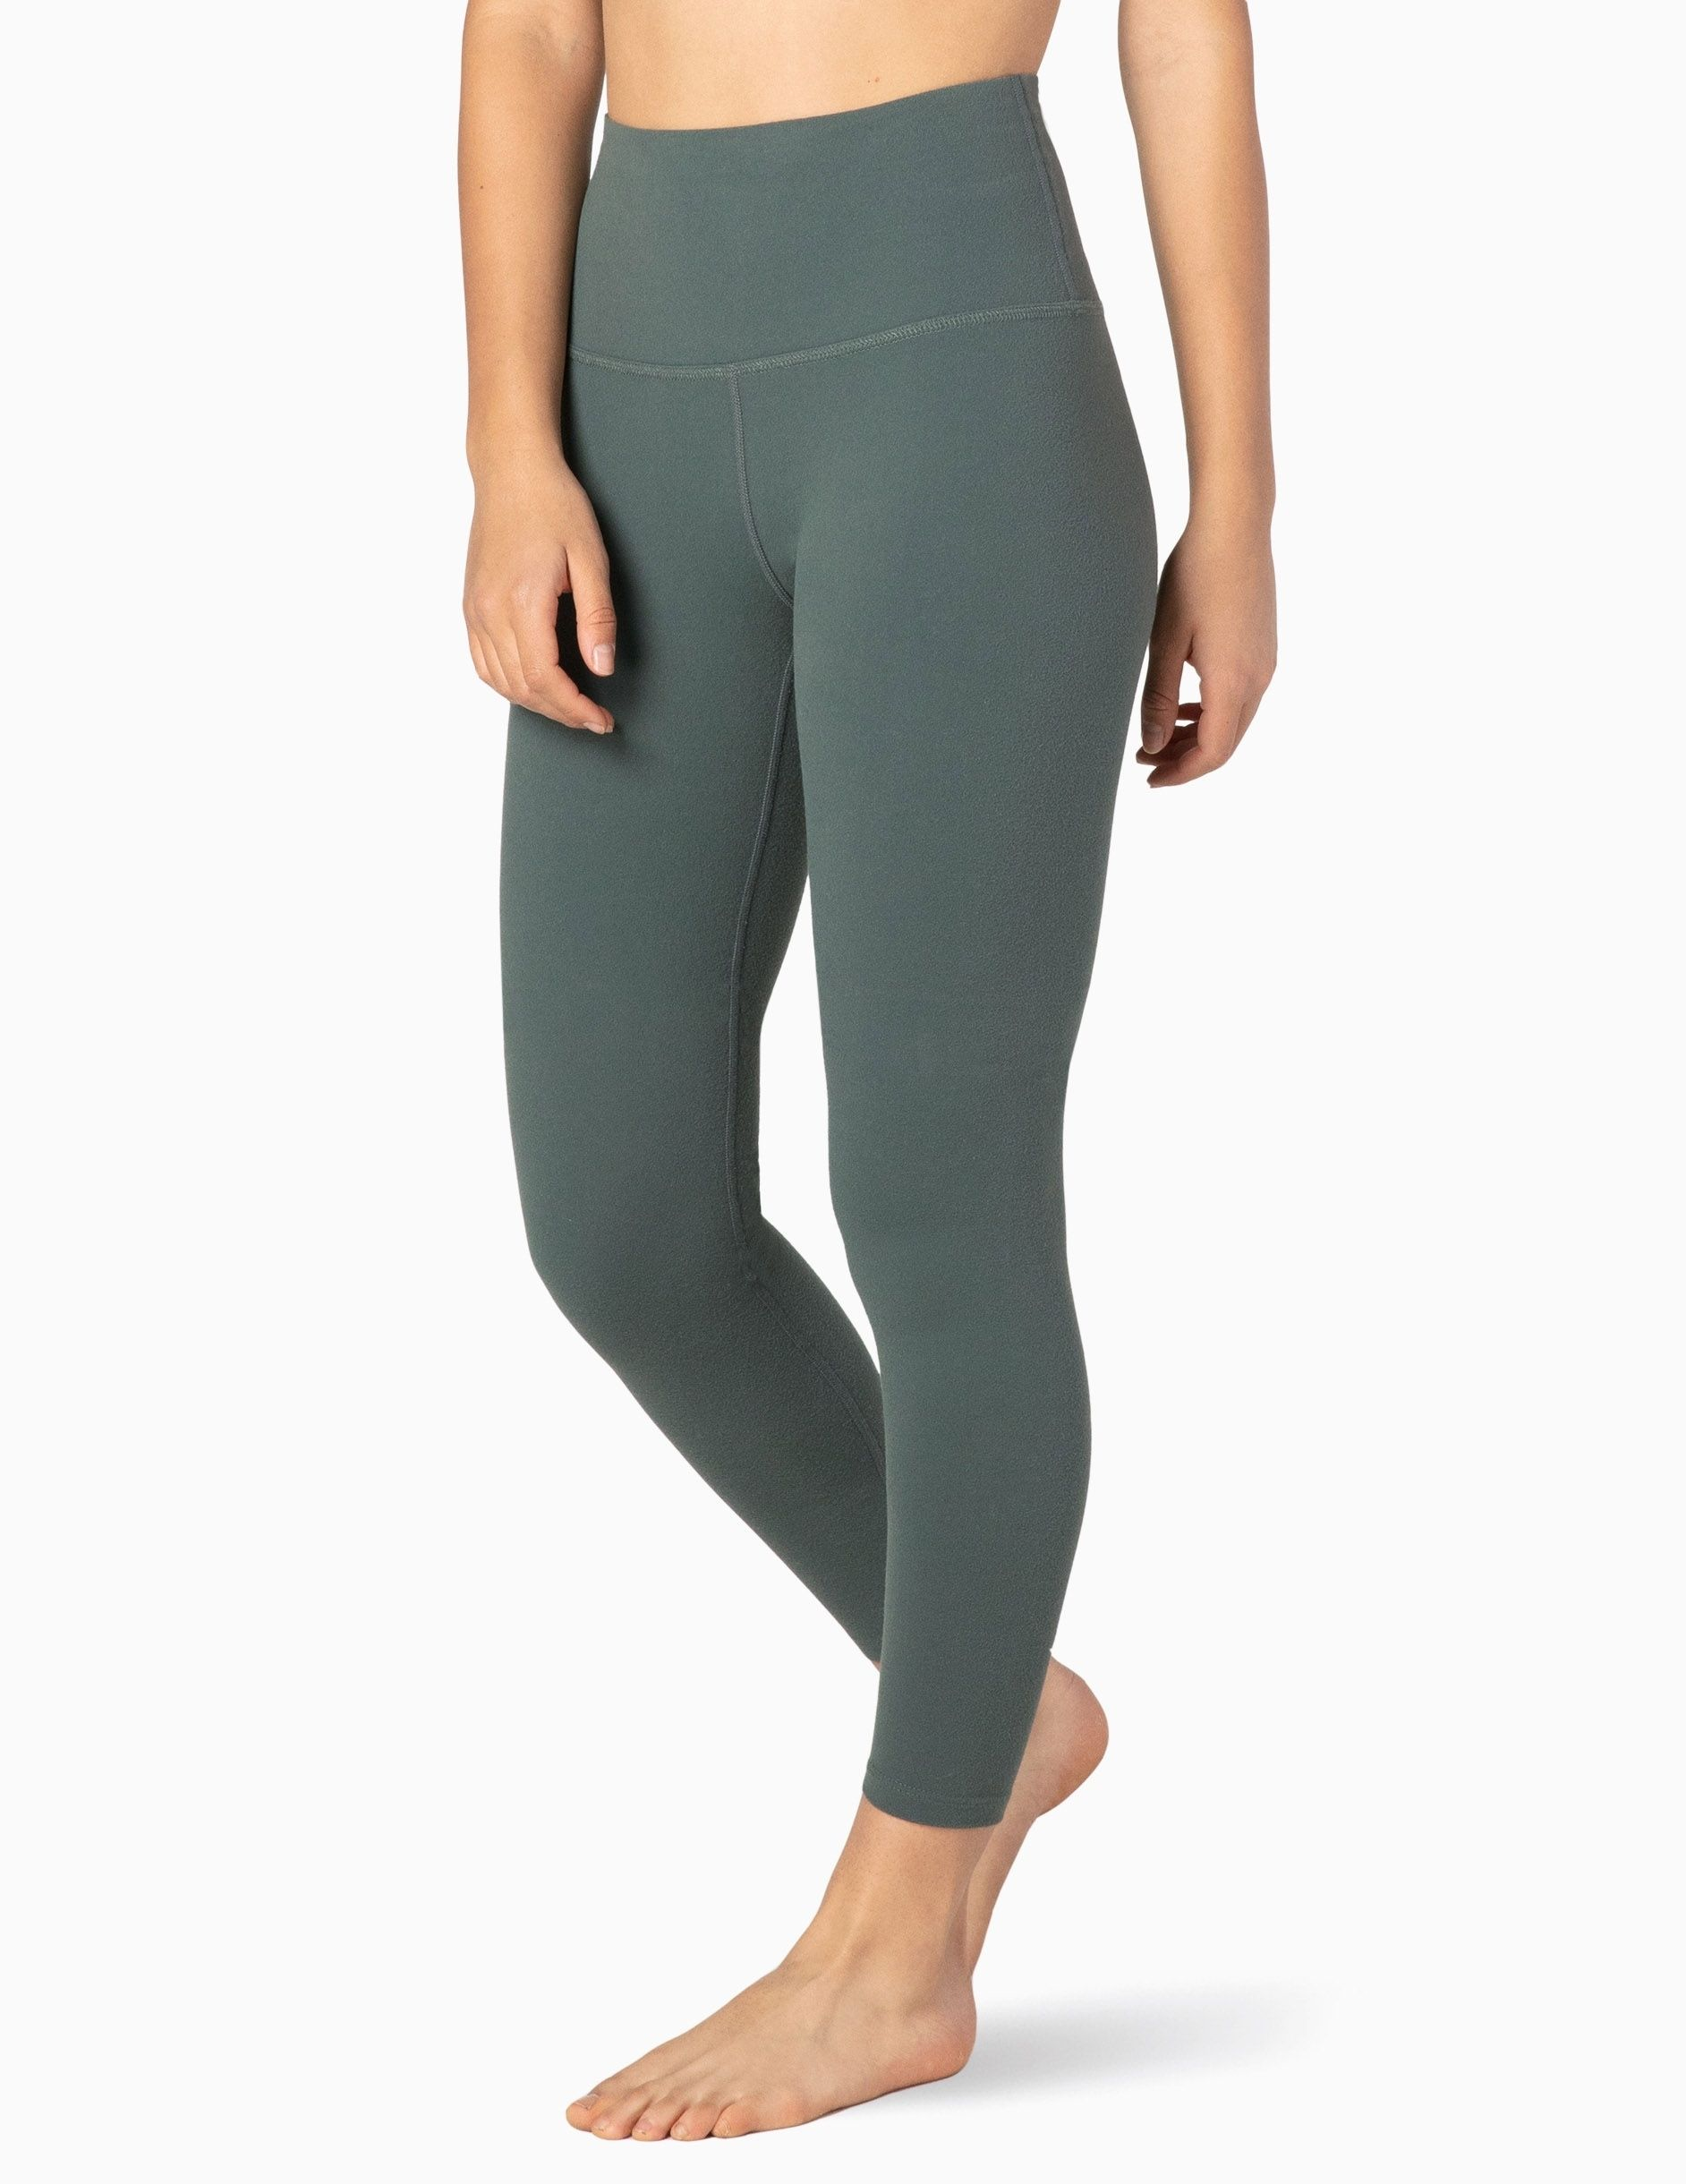 8ed38ccdd2 Caught In The Midi High Waisted Legging | workout | Workout, Yoga